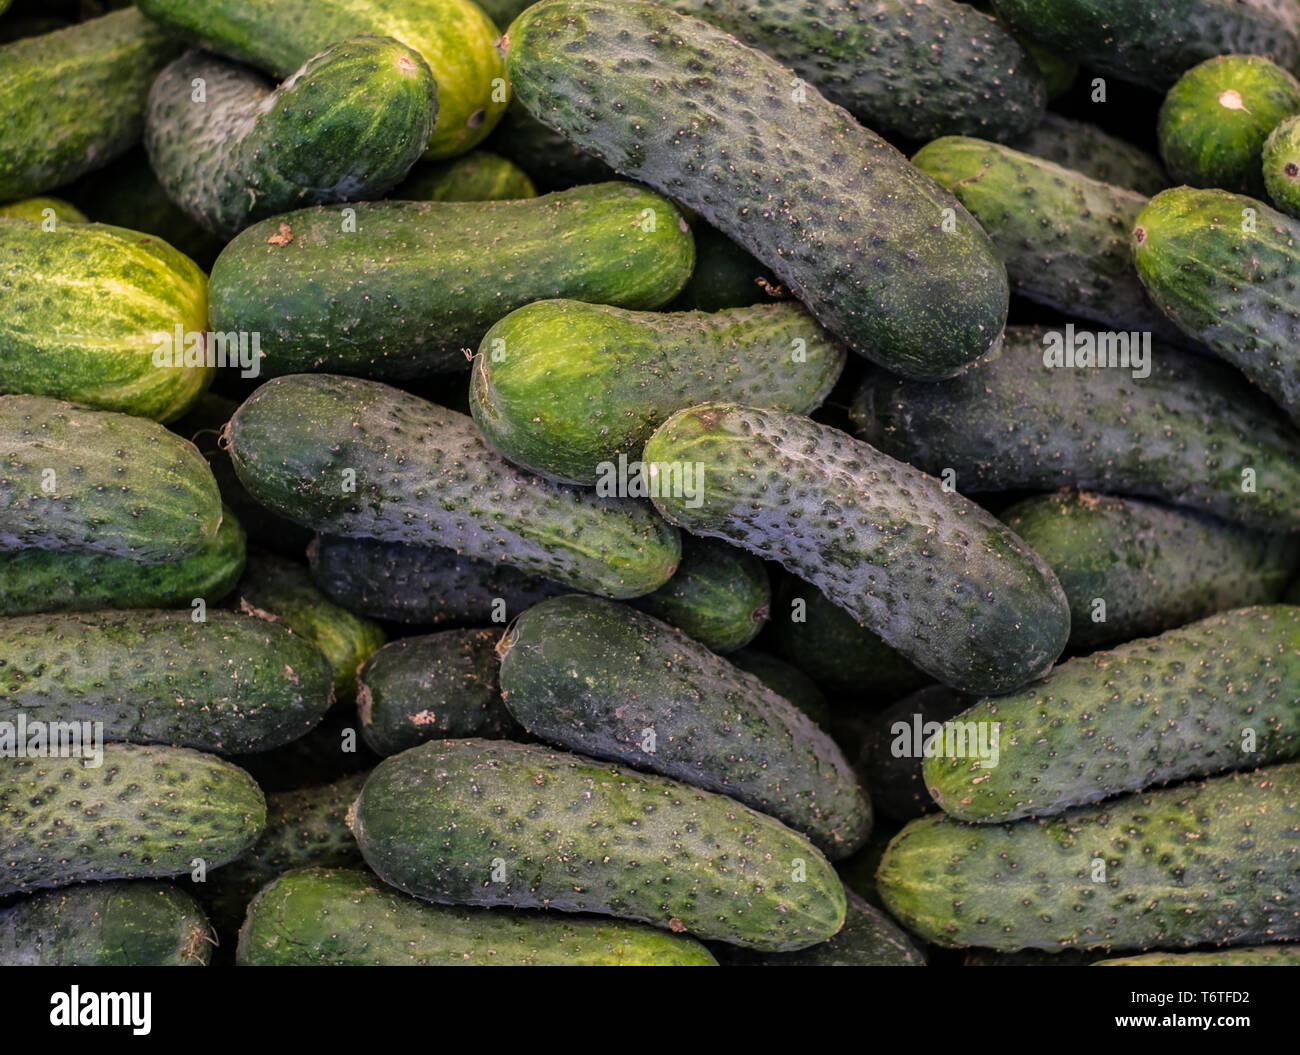 cucumbers at the market stall - Stock Image